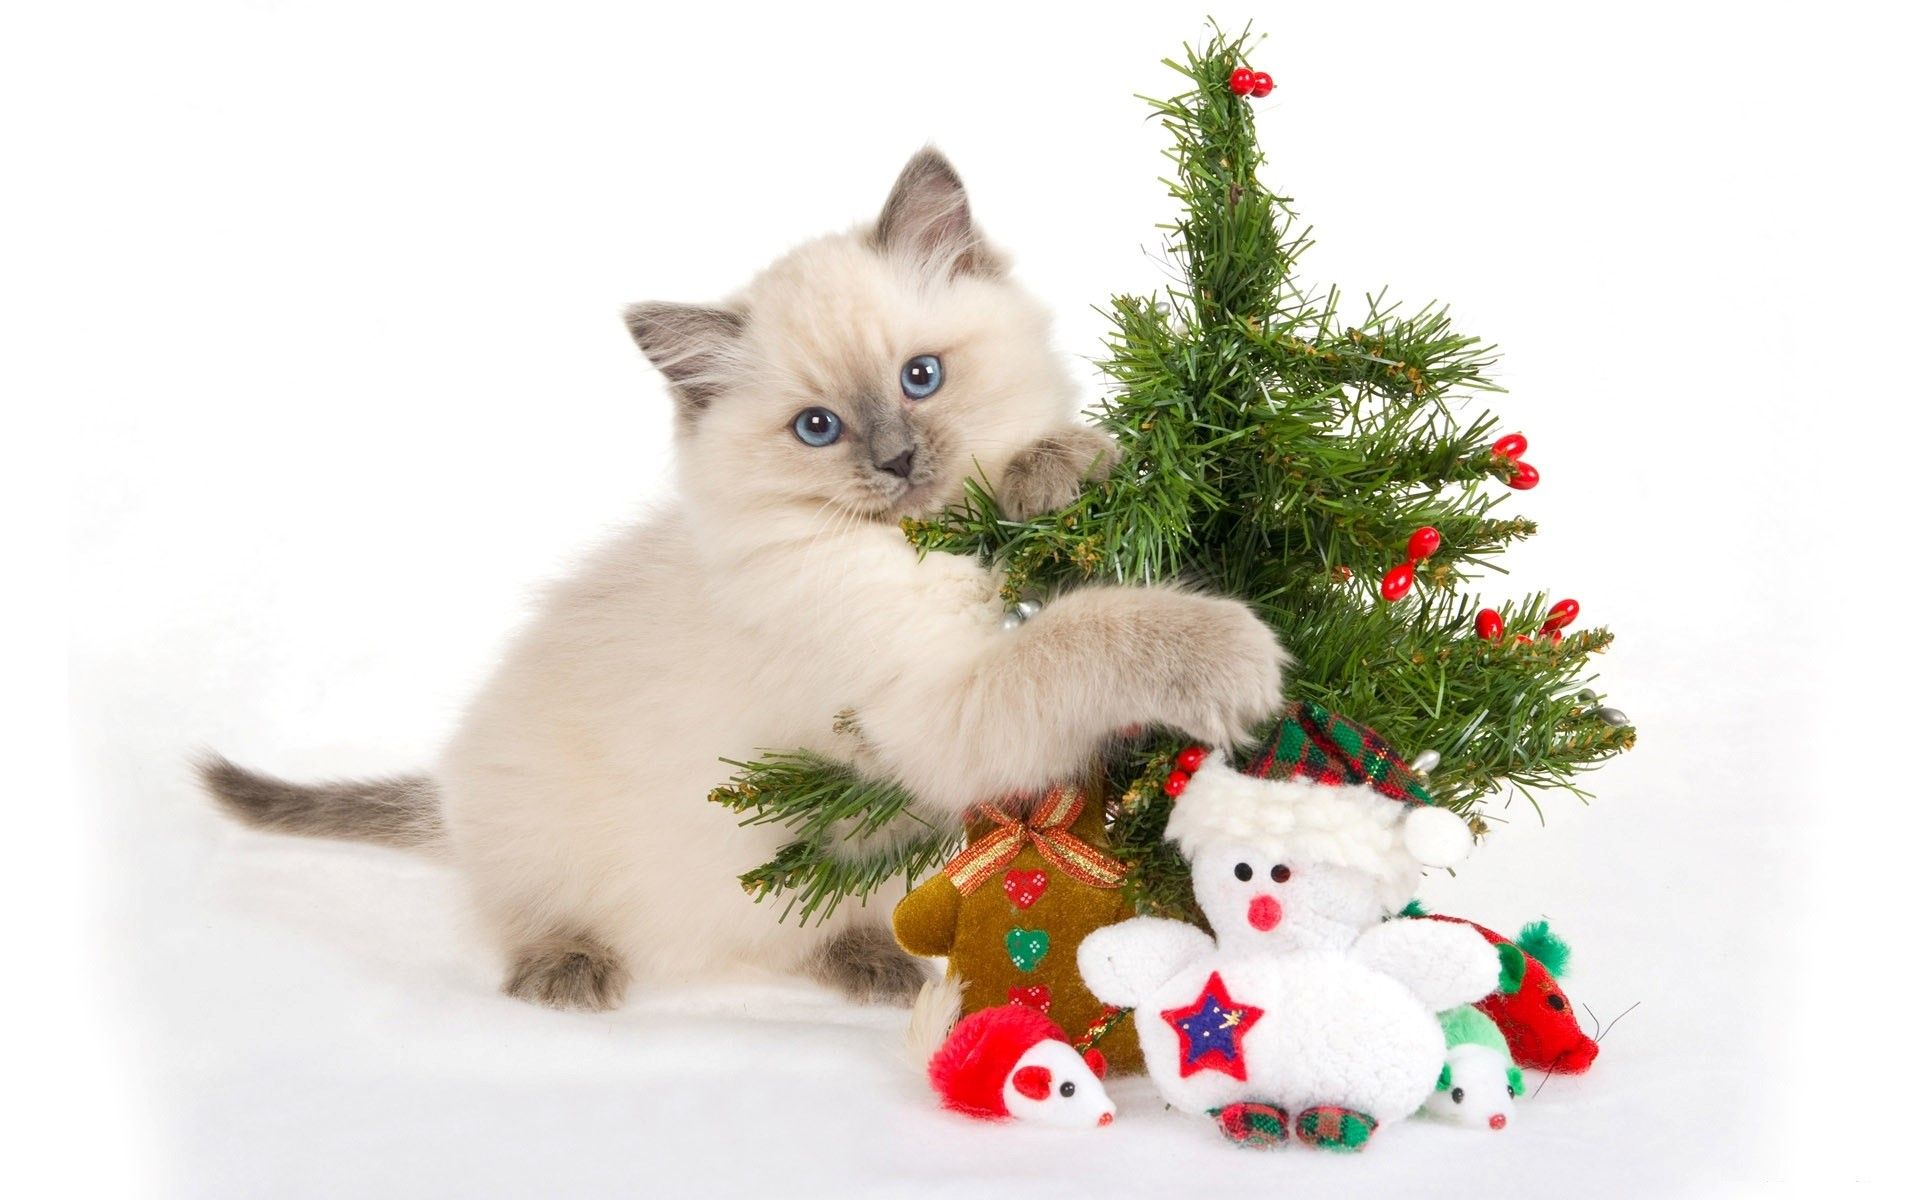 1920x1200 Nice Cute Cat with Christmas Tree Wallpaper   HD Wallpapers